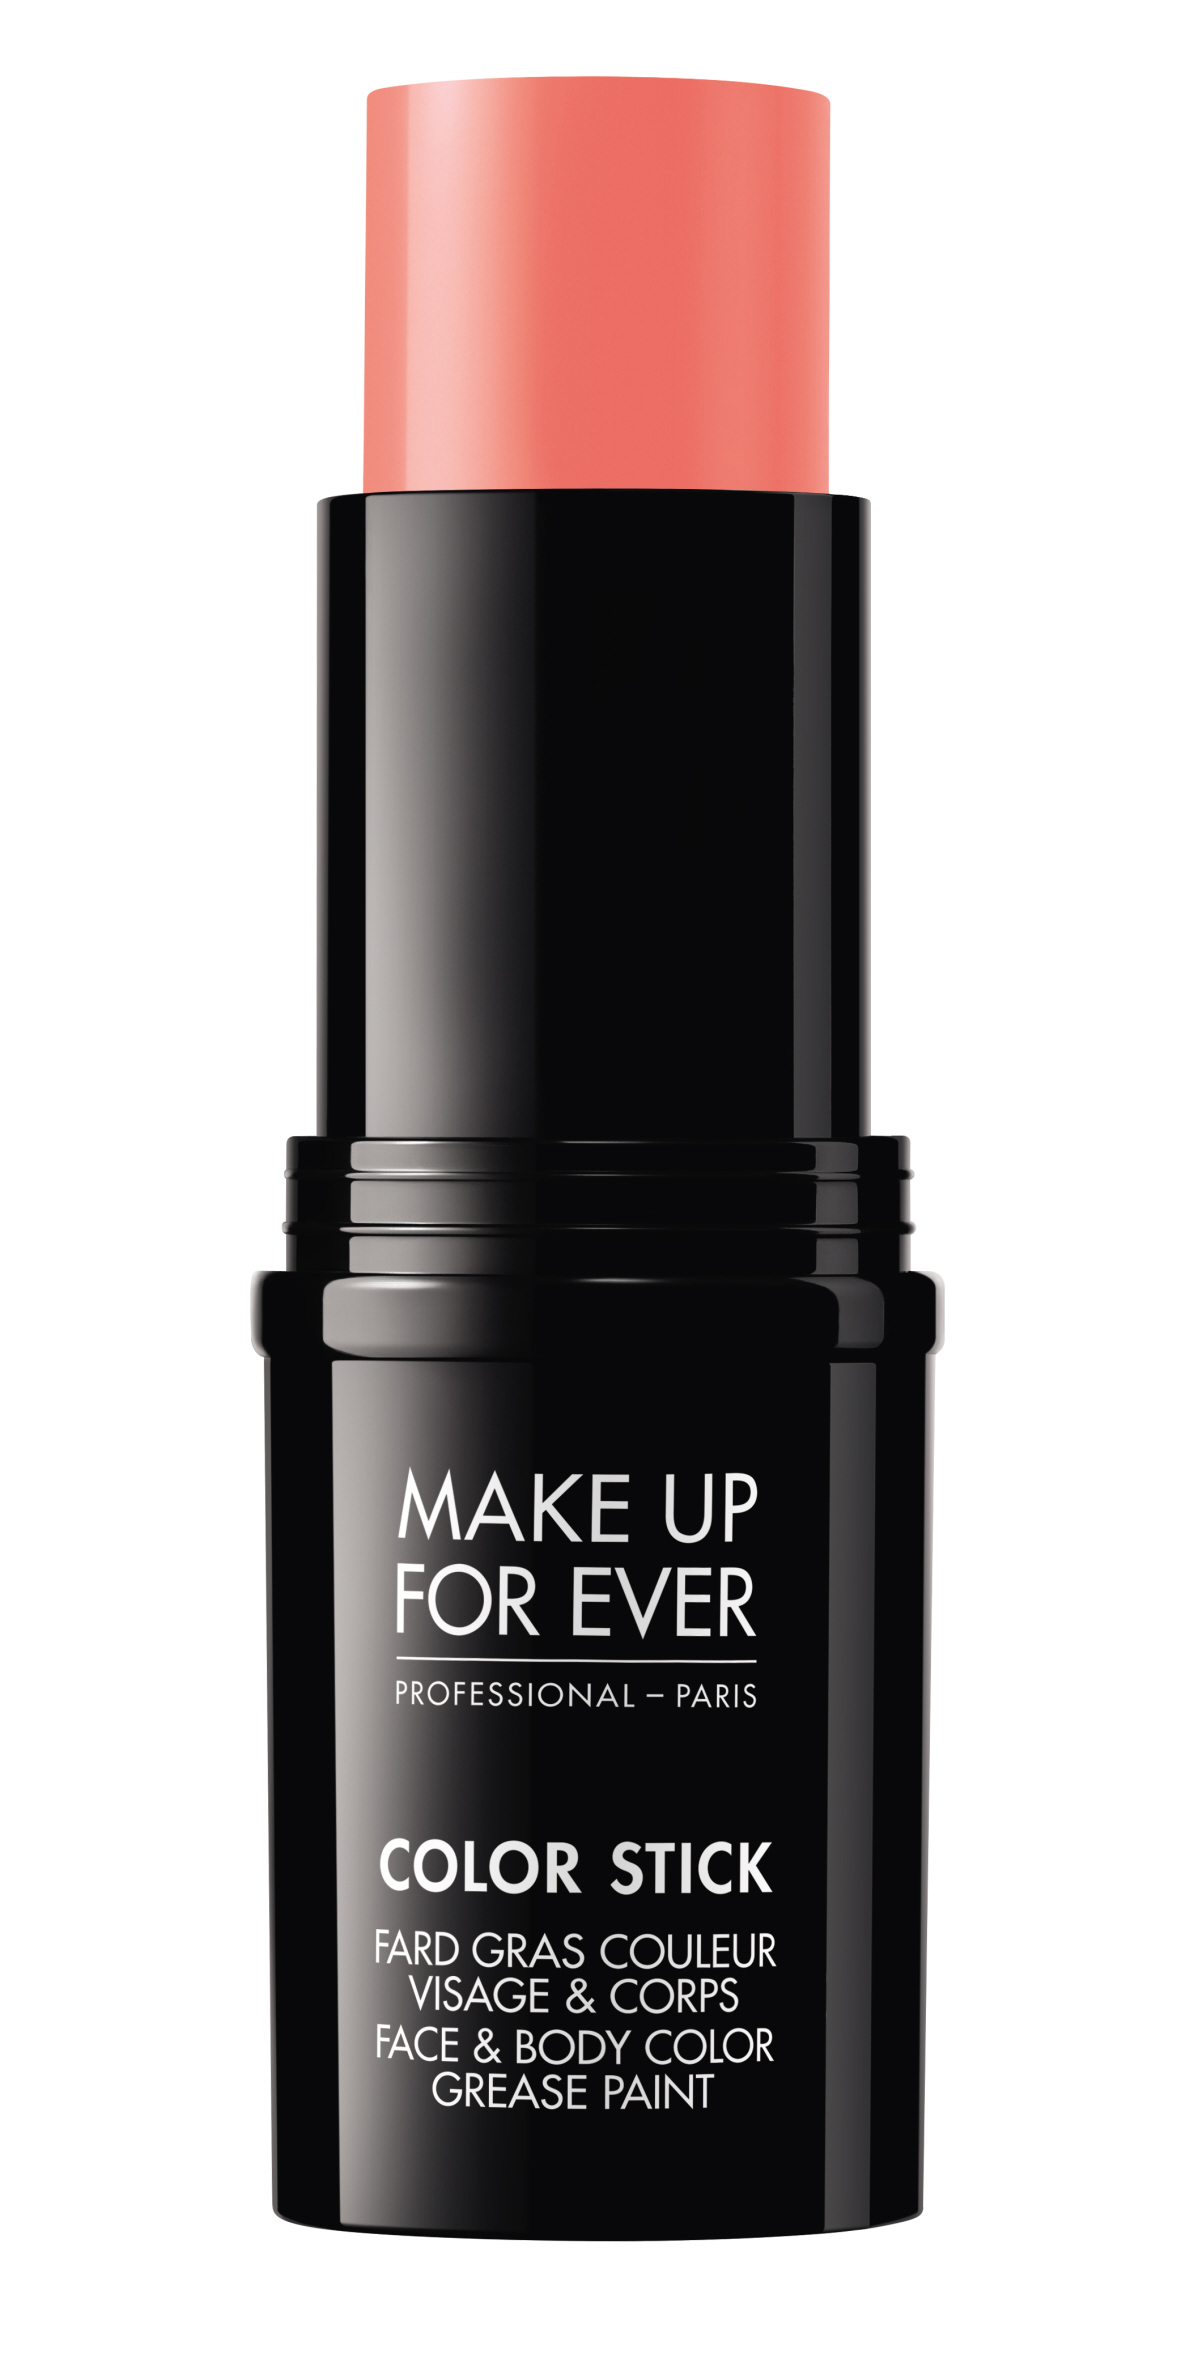 Стик цветной / Color Stick / Face & Body Color Grease Paint 15 г (M708 Коралловый) Make Up For Ever